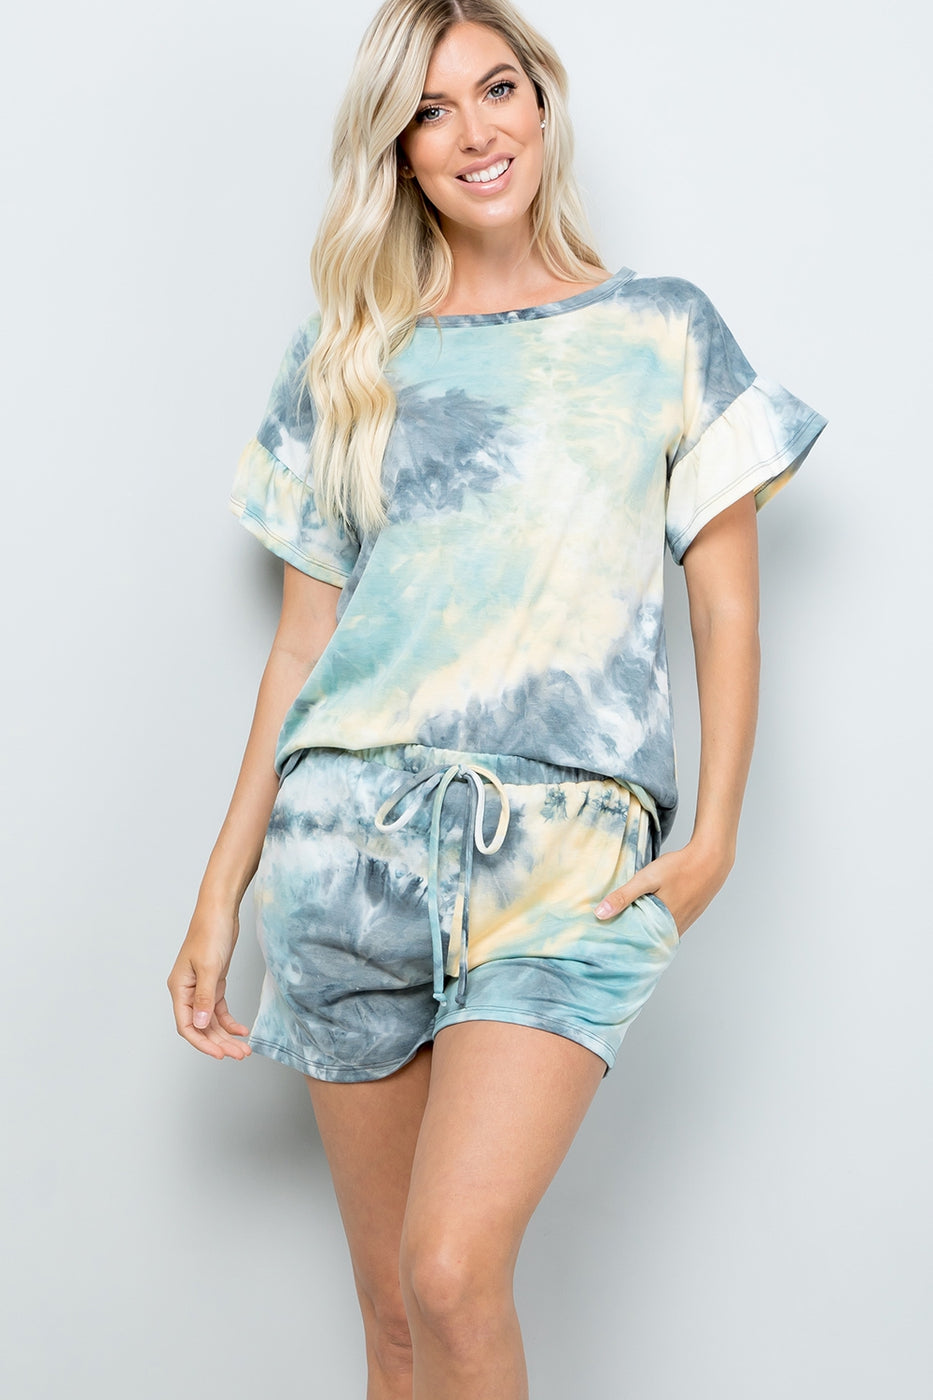 Malibu Shores Tie Dye Top - Top - MIA Boutique LLC